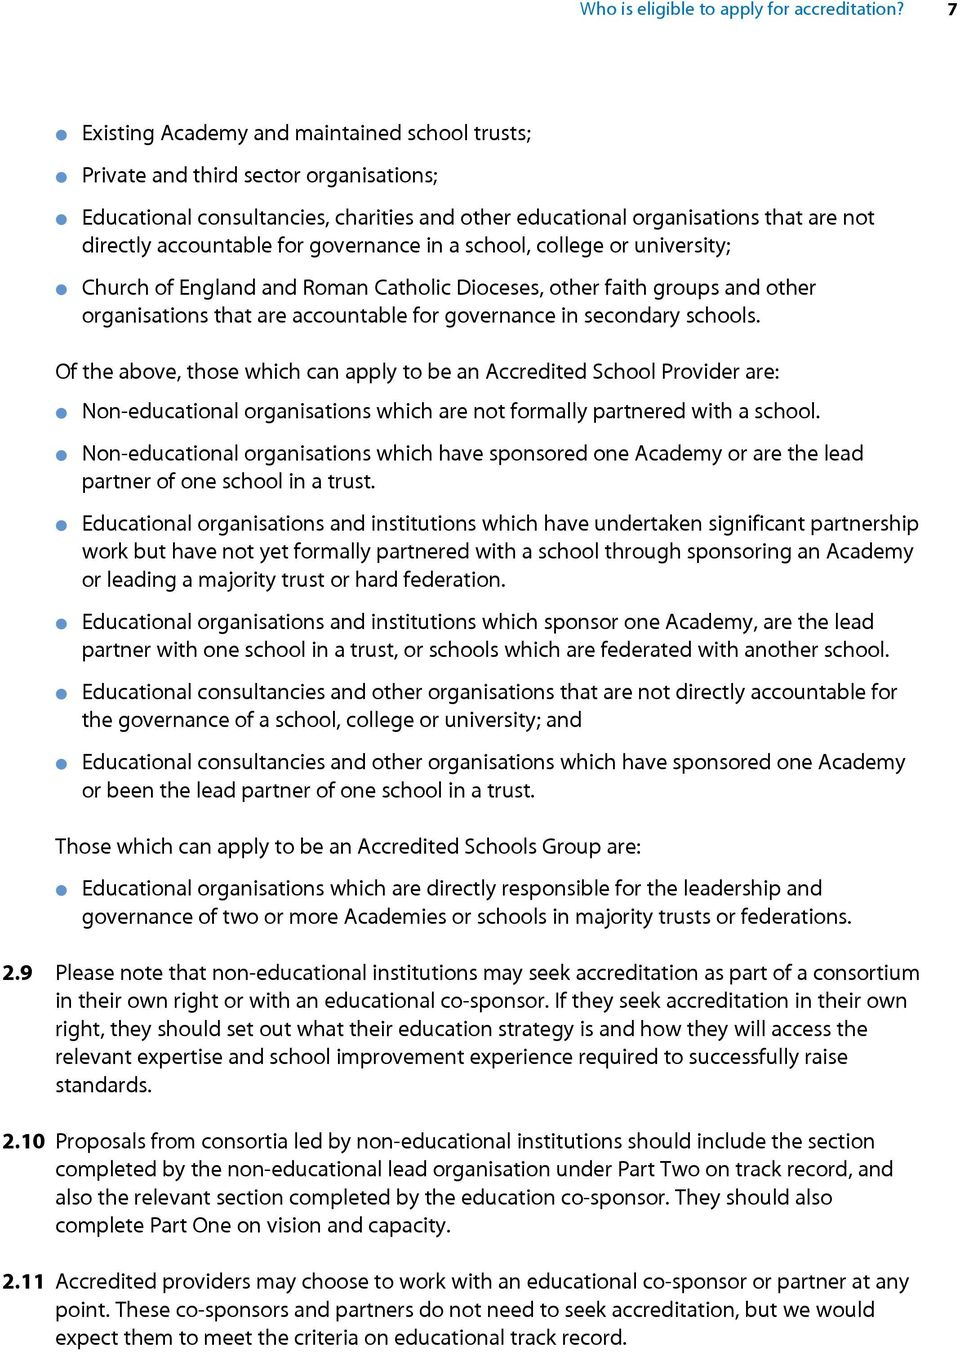 governance in a school, college or university; Church of England and Roman Catholic Dioceses, other faith groups and other organisations that are accountable for governance in secondary schools.